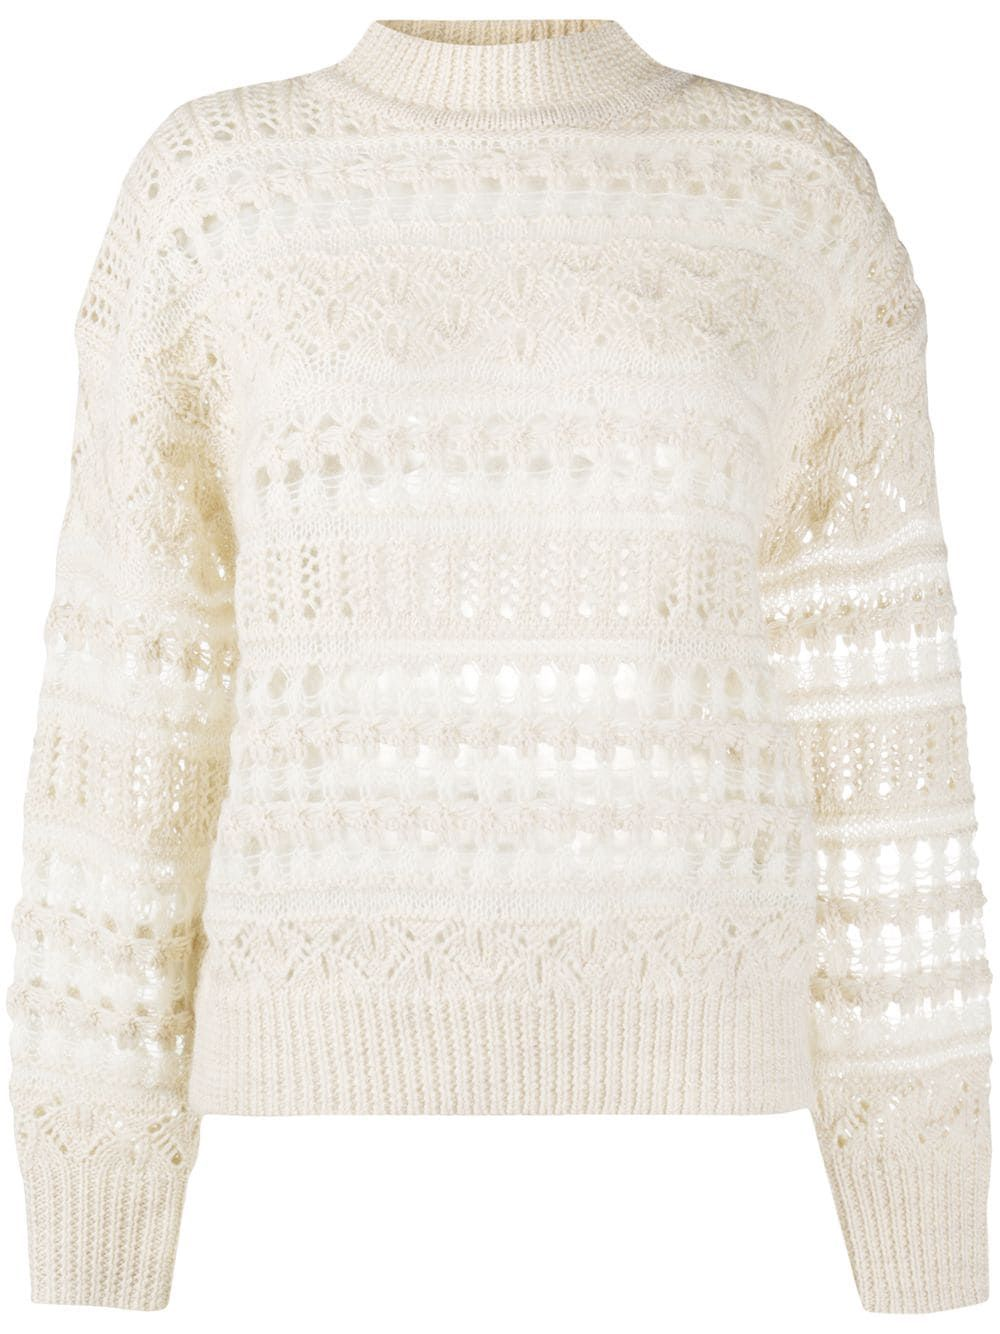 Ecru mohair-wool blend Pernille open knit jumper from ISABEL MARANT ÉTOILE featuring round neck, long sleeves, ribbed hem and ribbed cuffs.